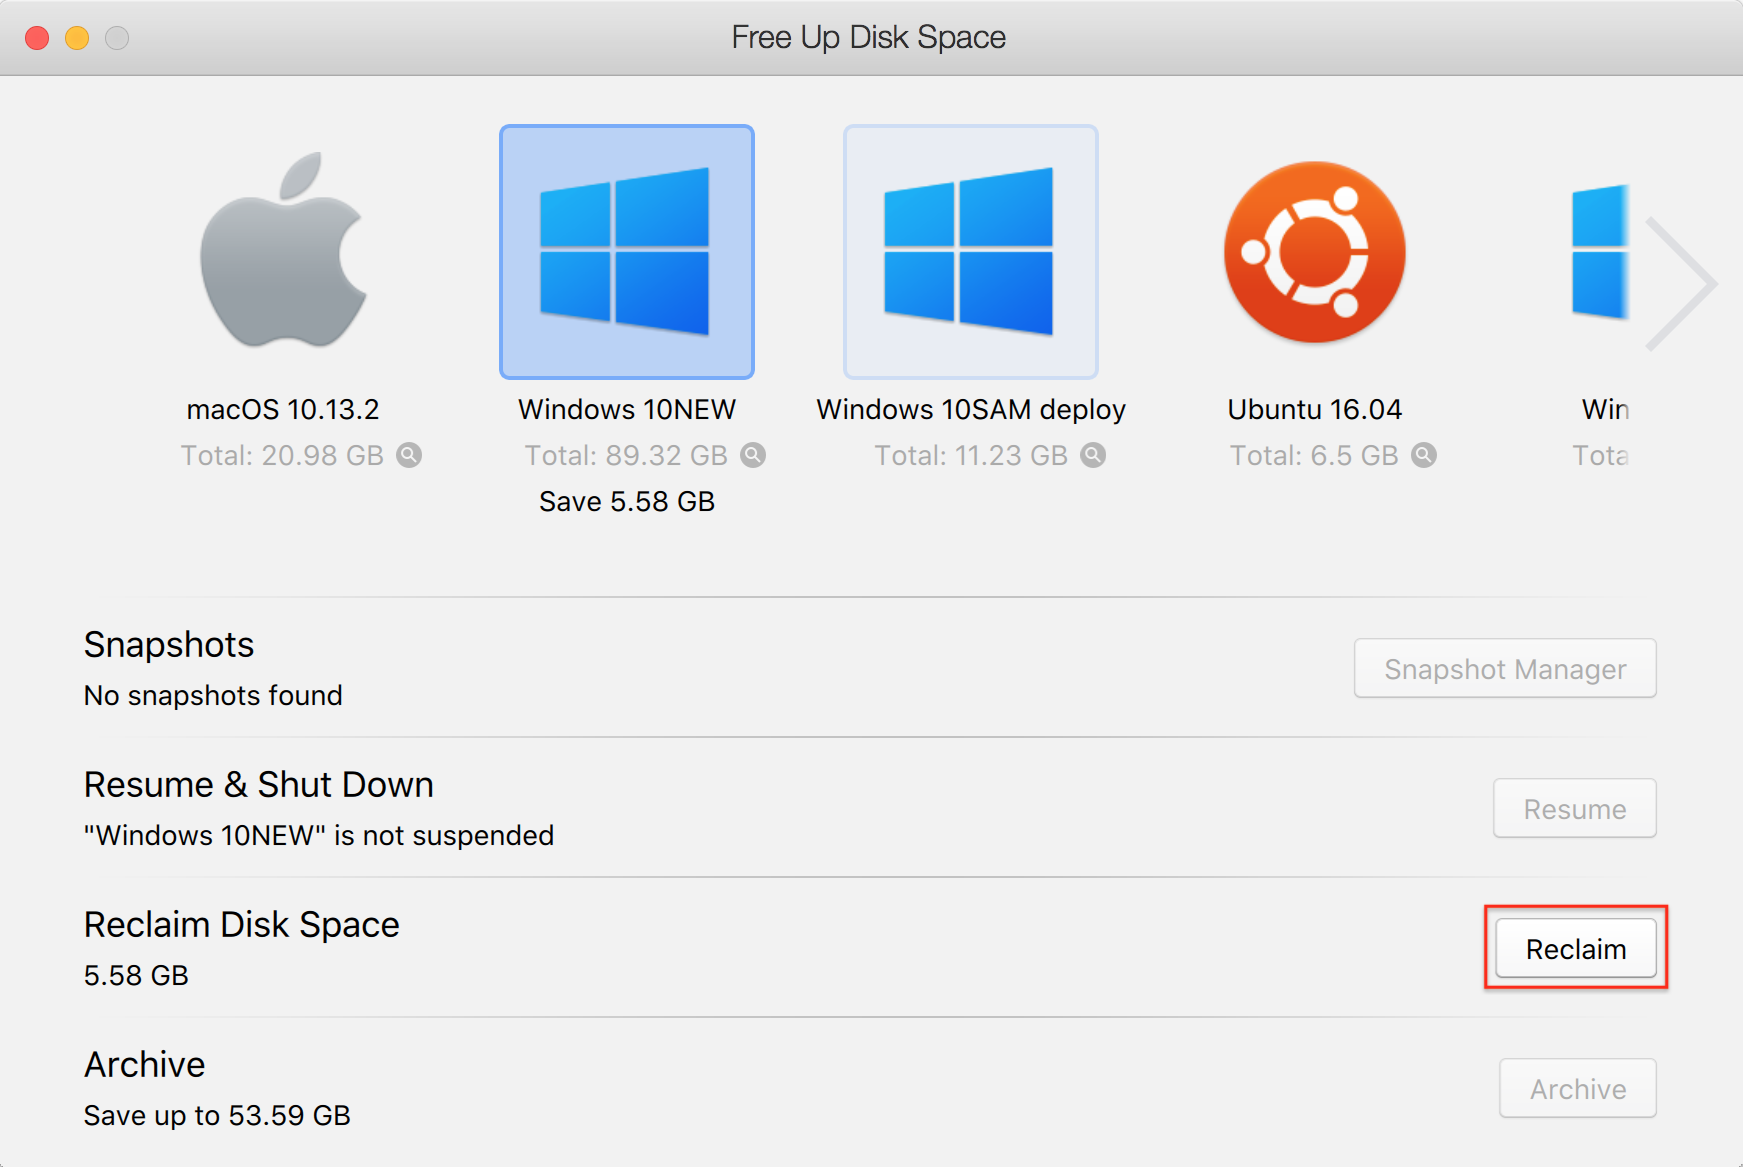 Free up disk space on Mac